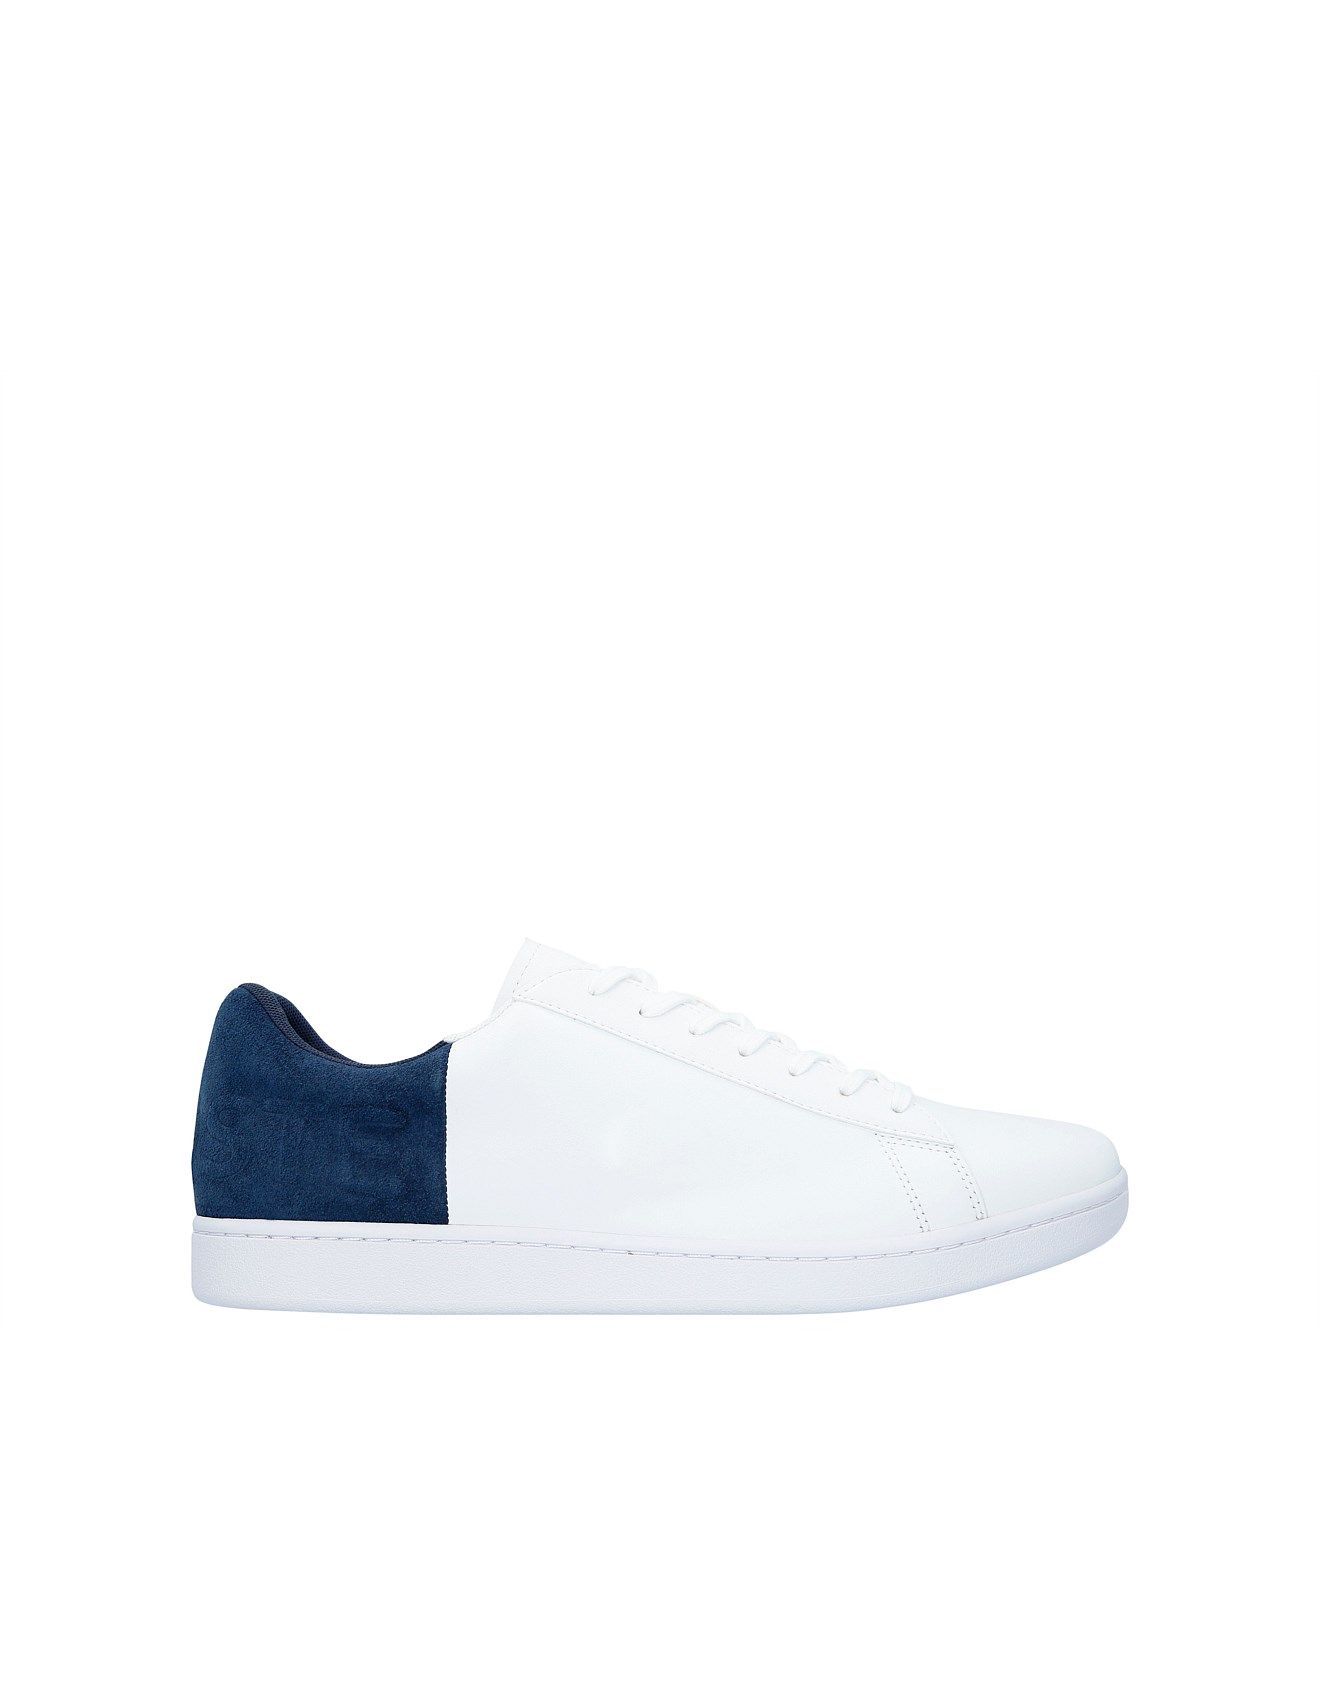 207b8586d Sneakers - CARNABY EVO 318 6 SPM WHT NVY